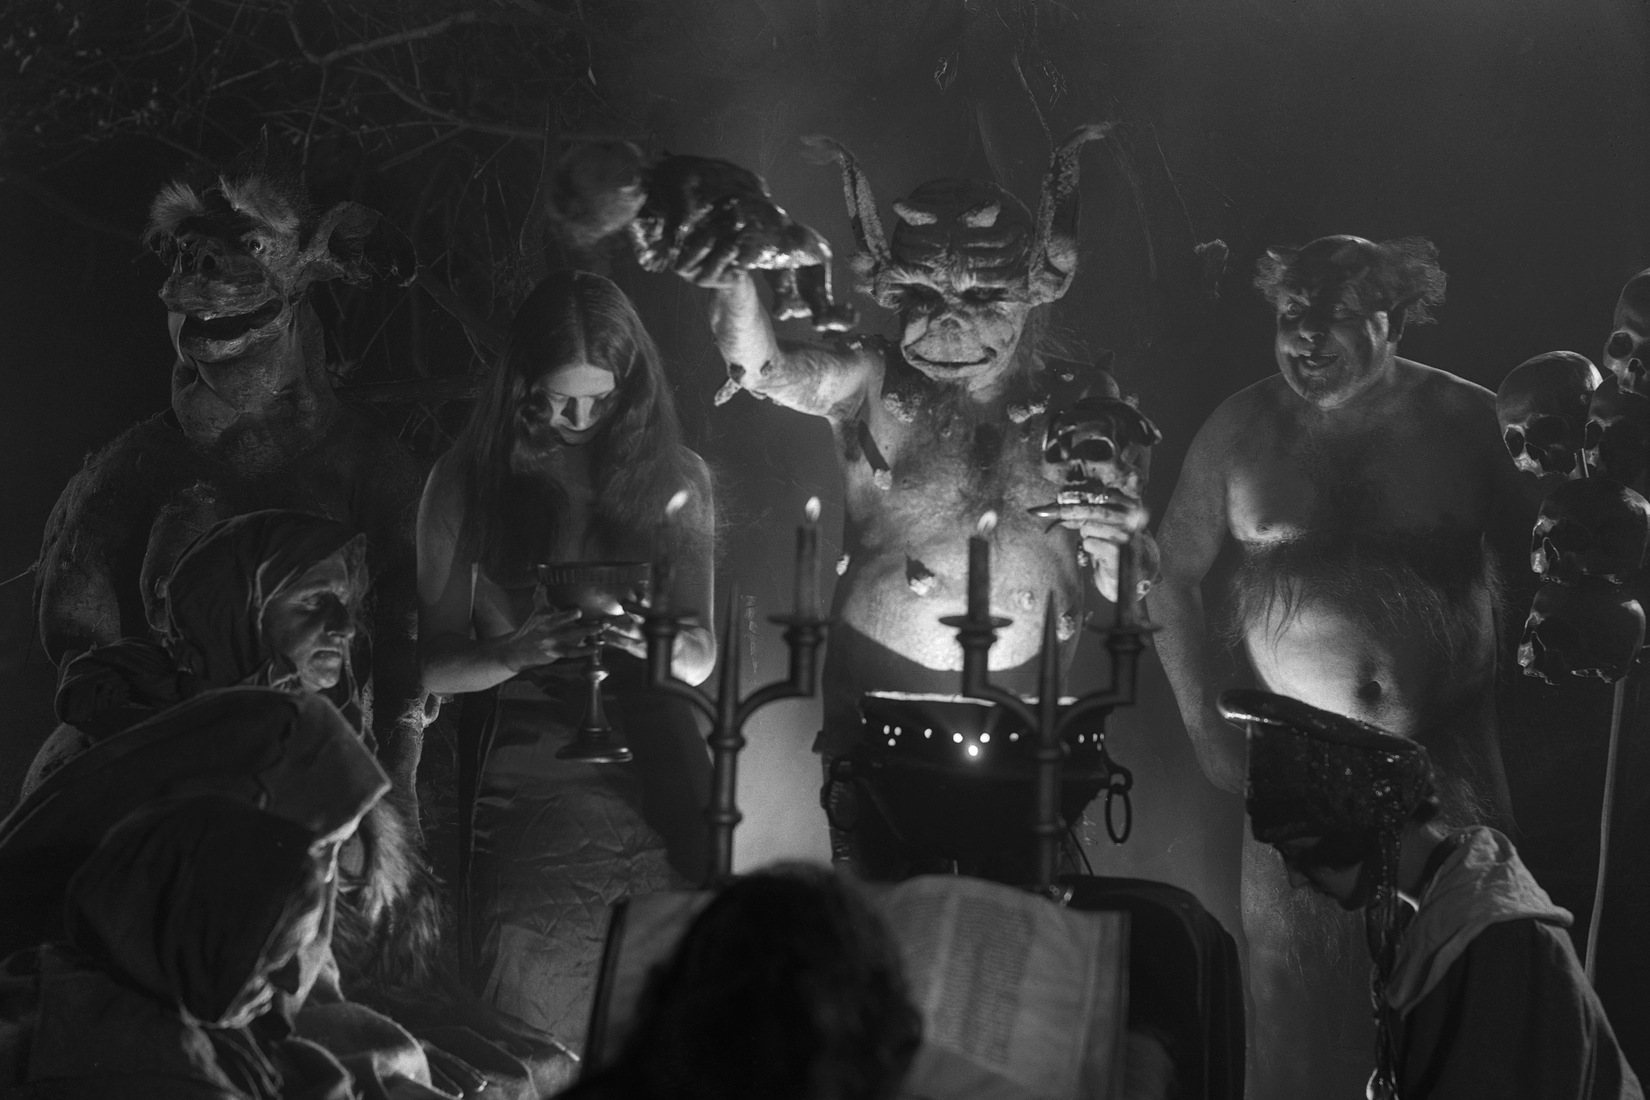 A ceremony with witches and demons - picture in black and white from the fim Häxan